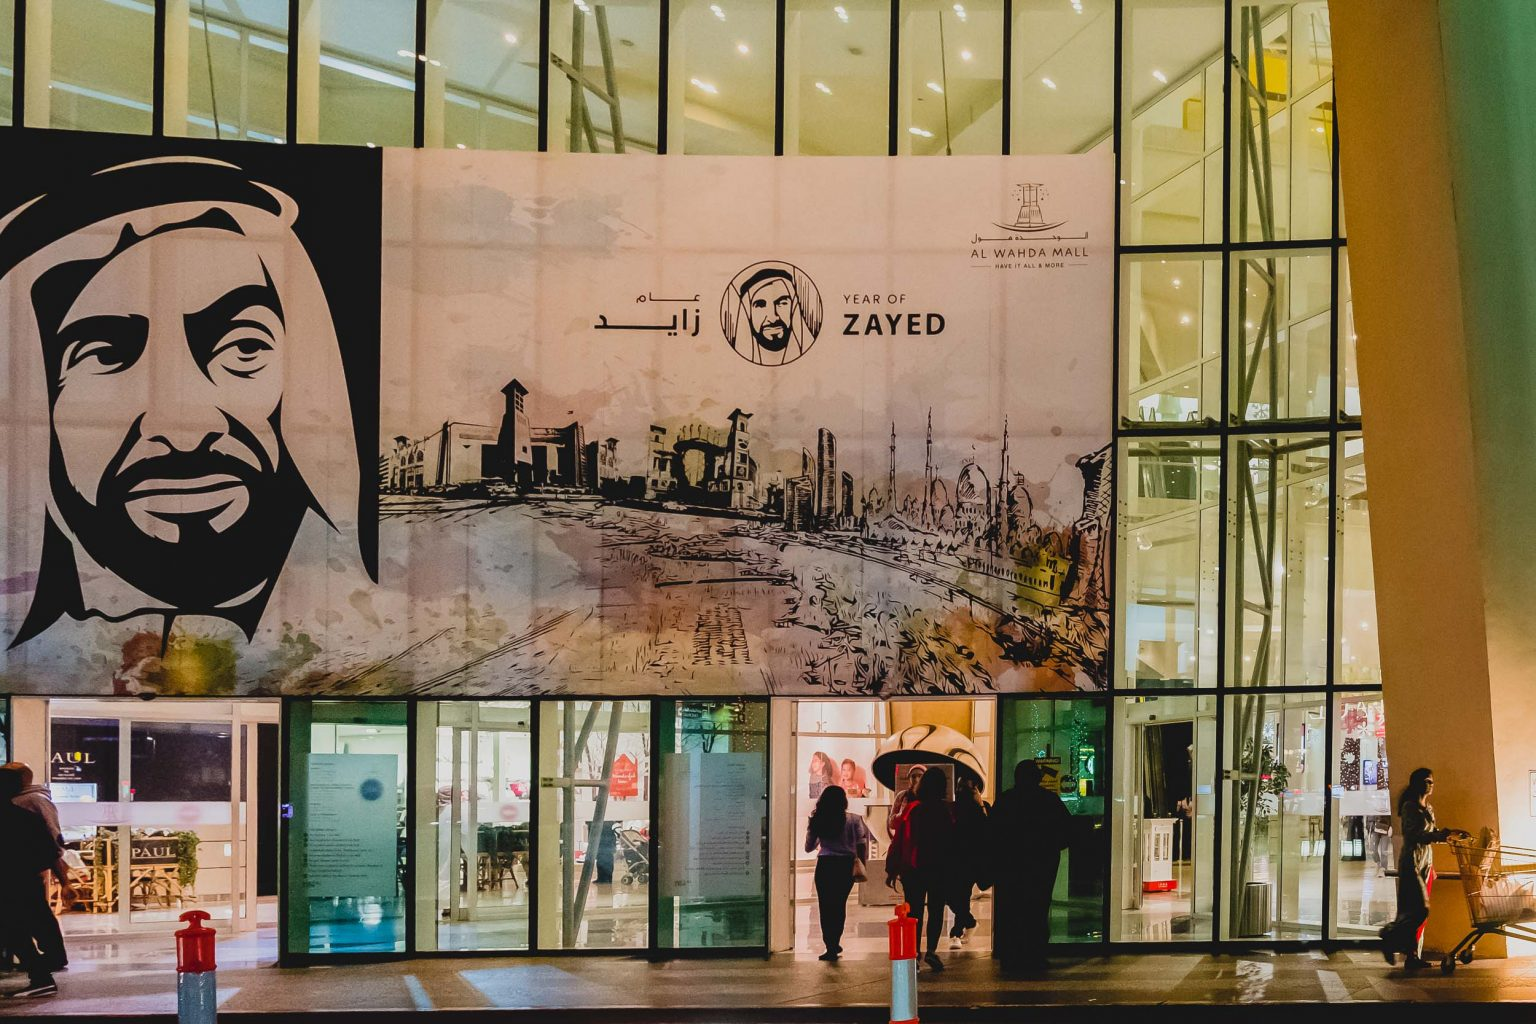 MALL IN ABU DHABI DISPLAYING A GIANT PORTRAIT OF SHEIKH ZAYED BIN SULTAN, FOUNDER OF THE UAE